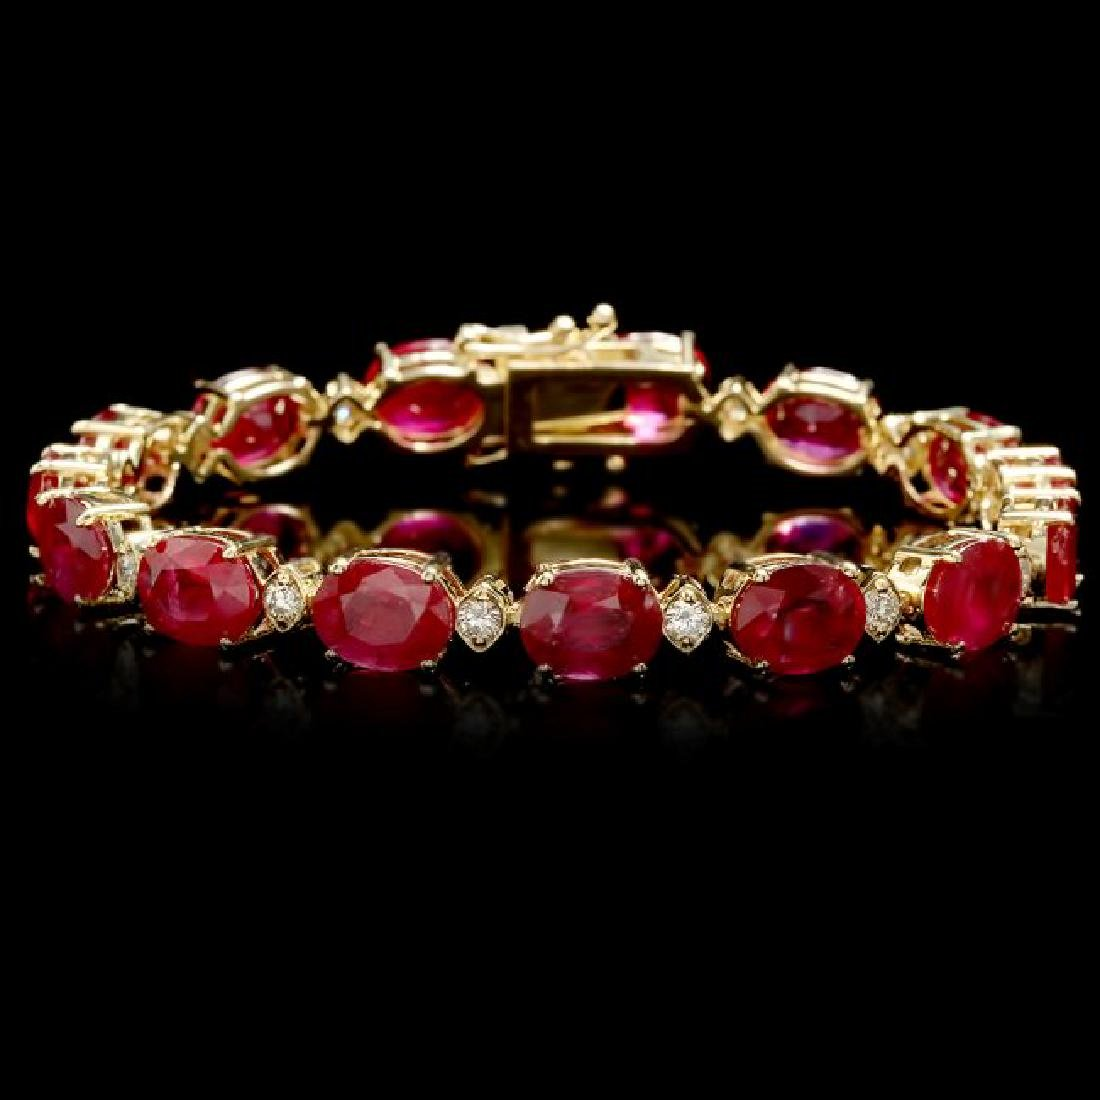 14k Gold 34.50ct Ruby 1.15ct Diamond Bracelet